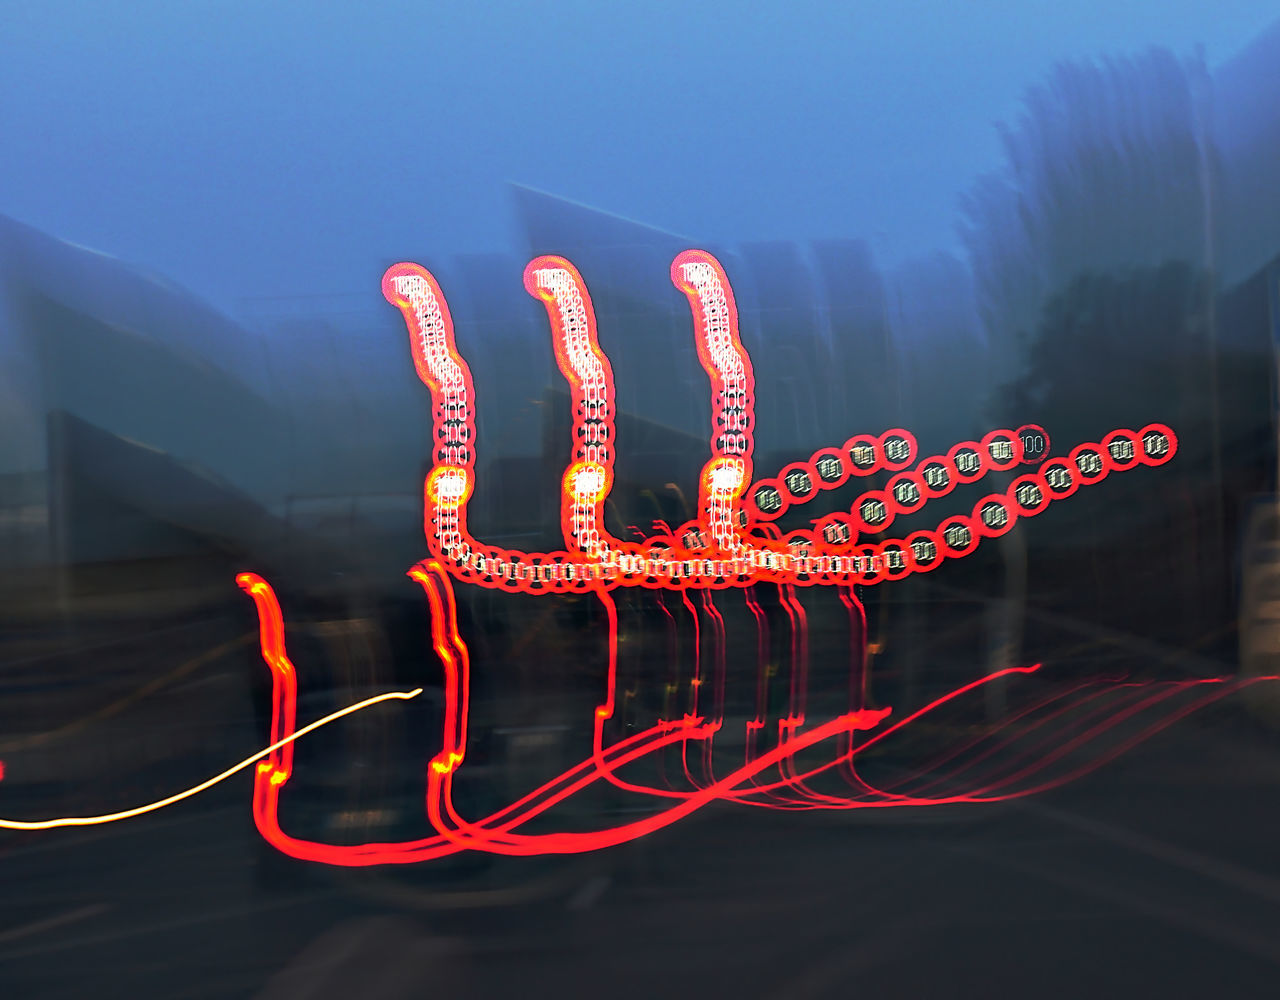 Blurred Motion Communication Illuminated Neon No People Outdoors Speed Limit Sign Traffic Transportation Tunnel